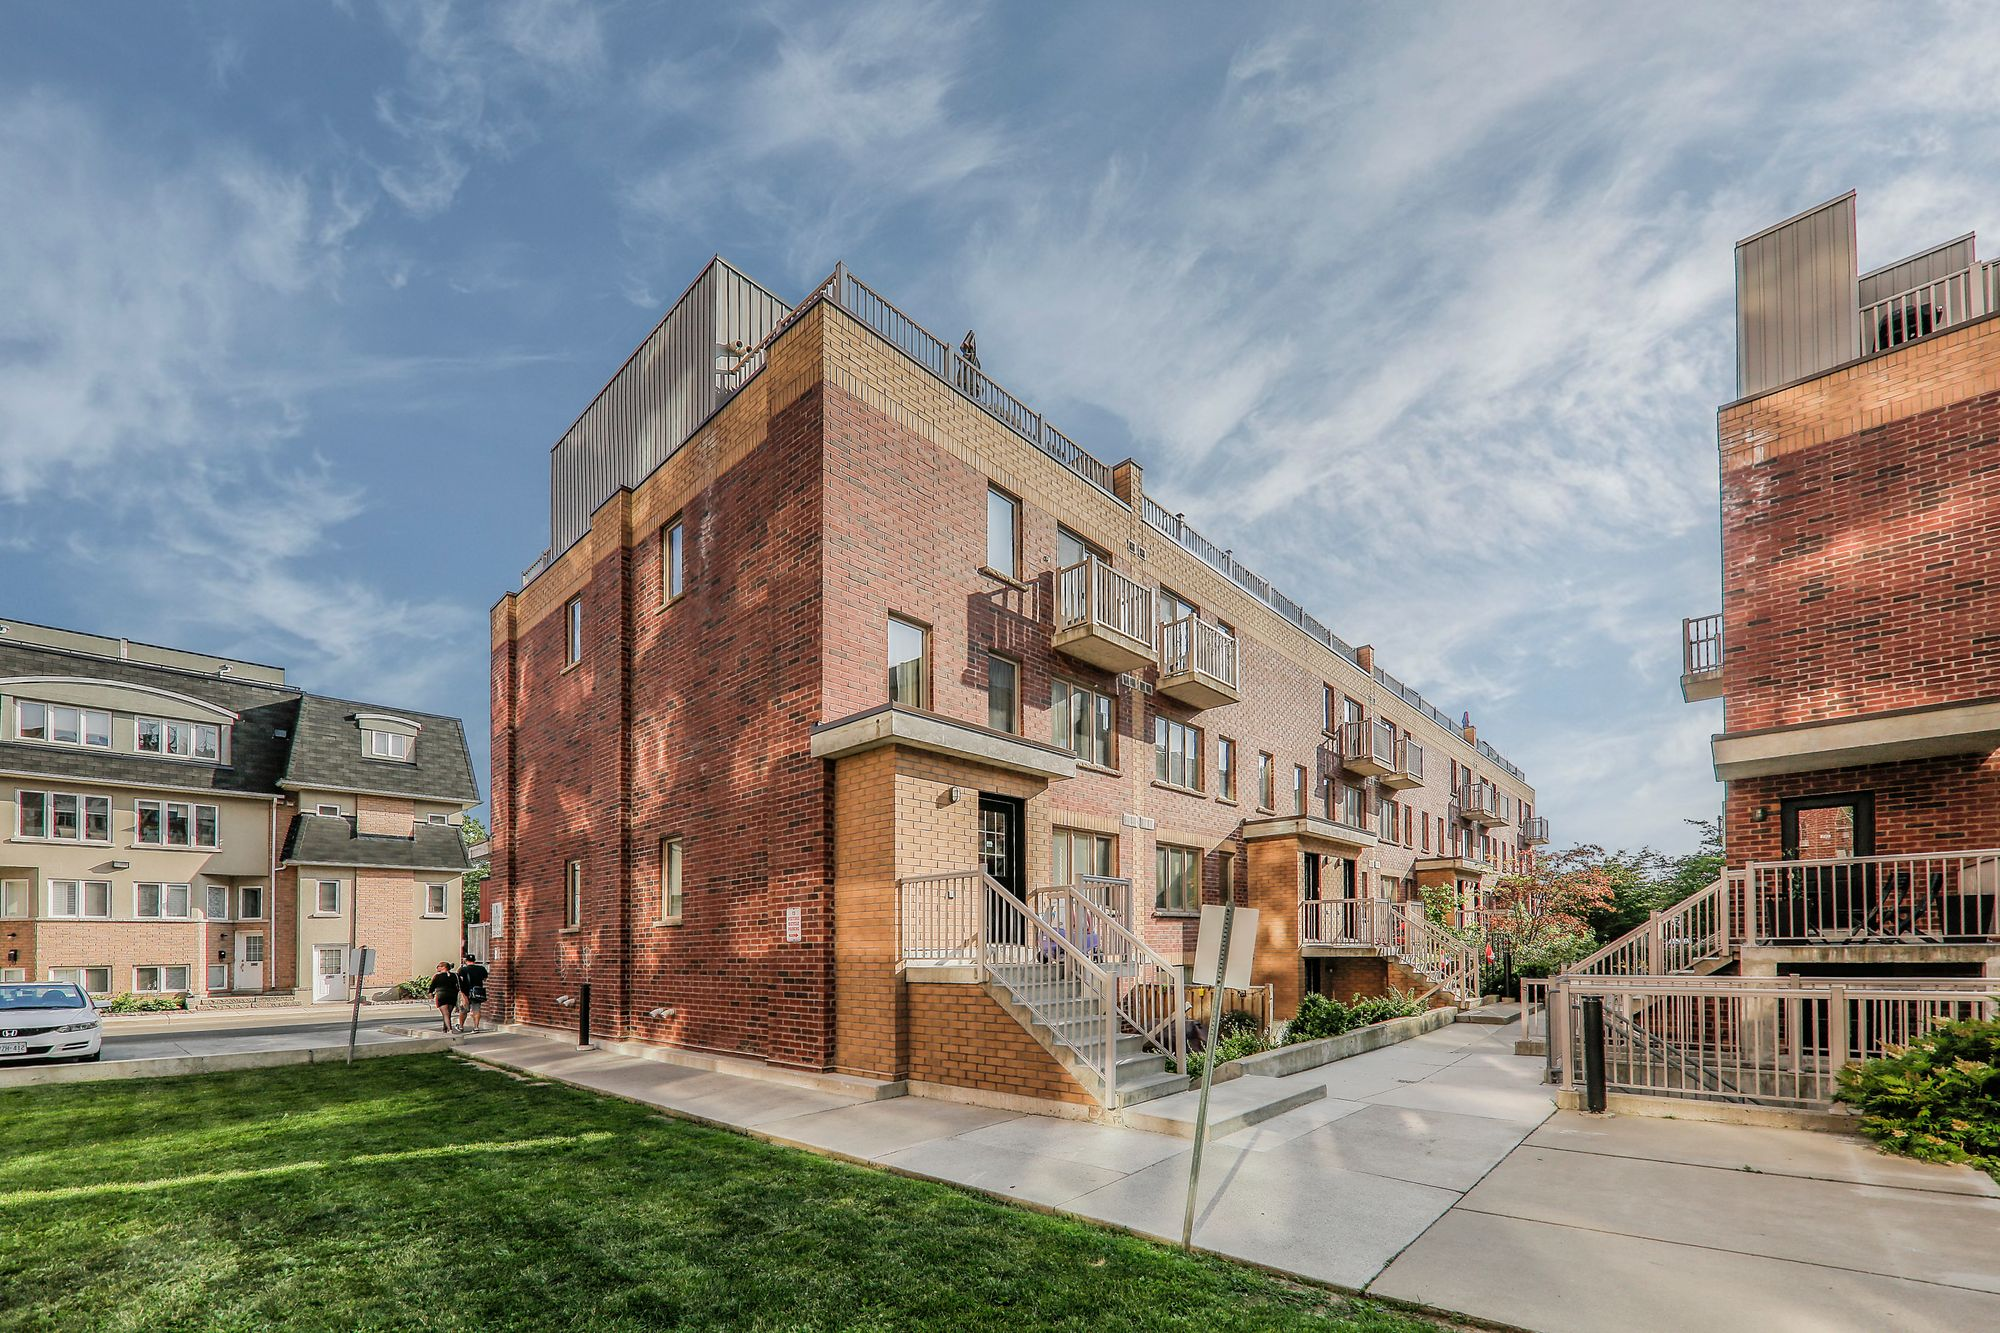 1-21 Ruttan St. This condo townhouse at Brownstones on Bloor is located in  West End, Toronto - image #1 of 5 by Strata.ca